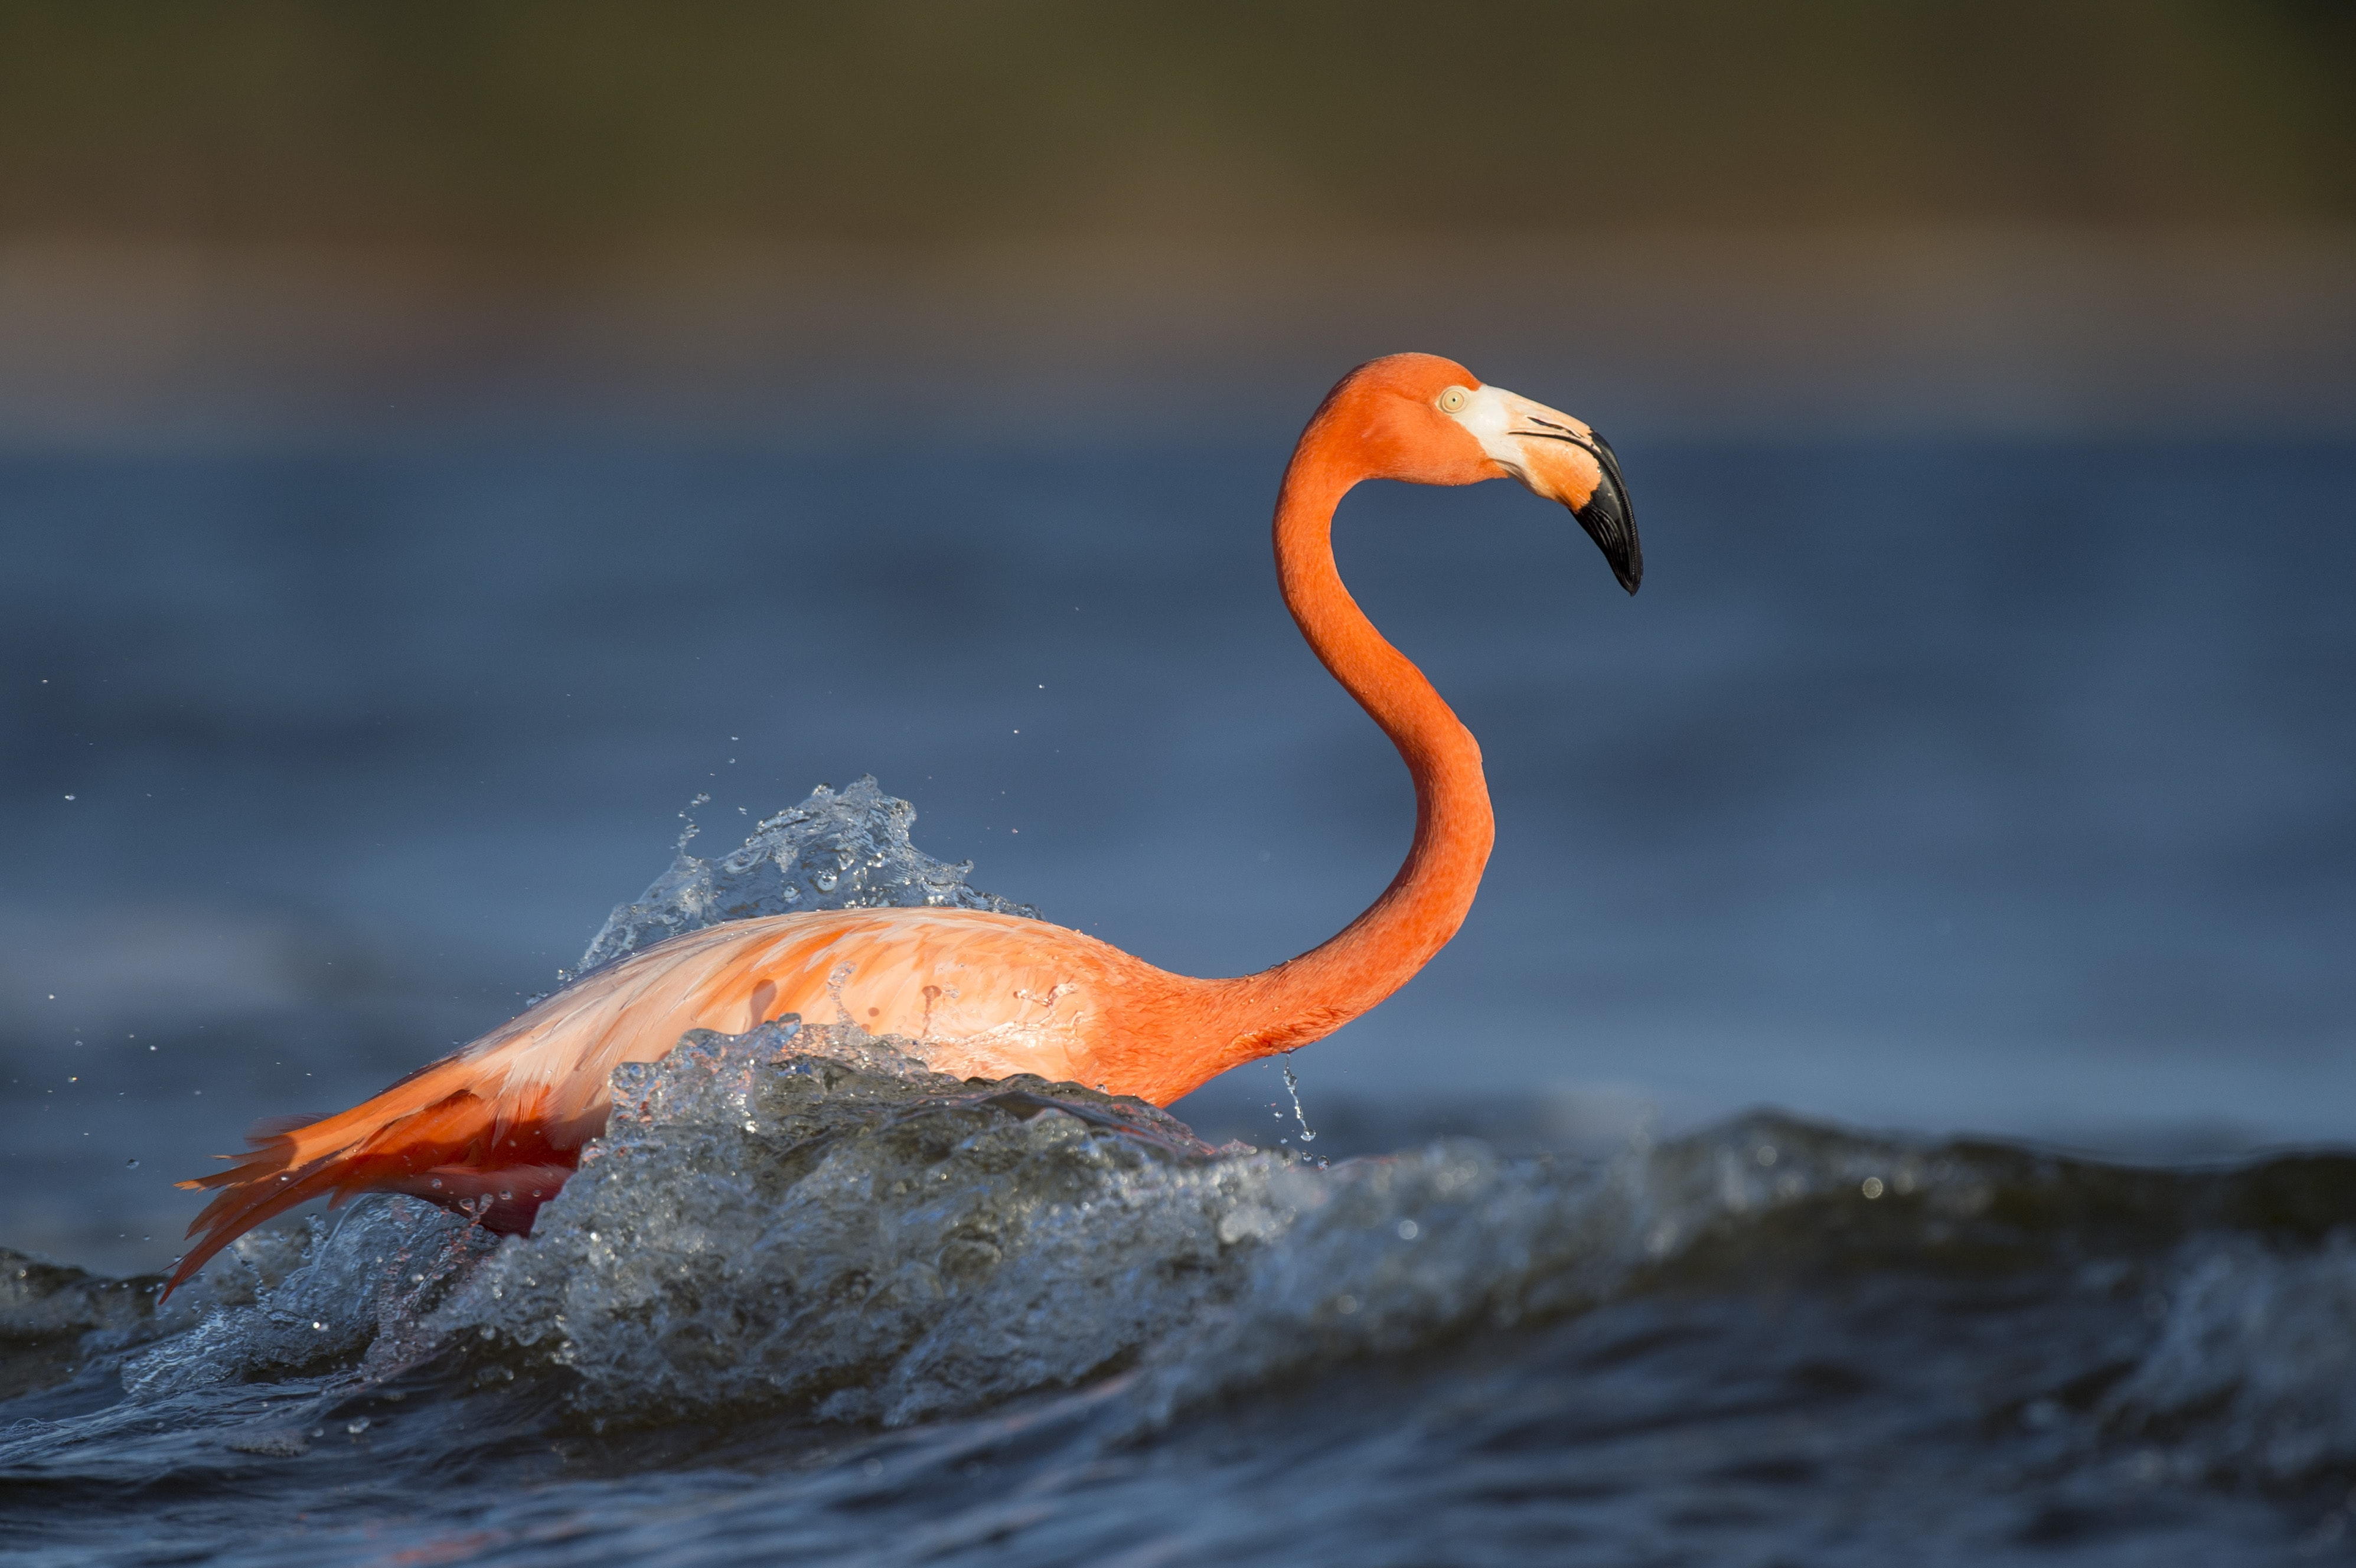 Pink flamingo swims alone in the ocean waves